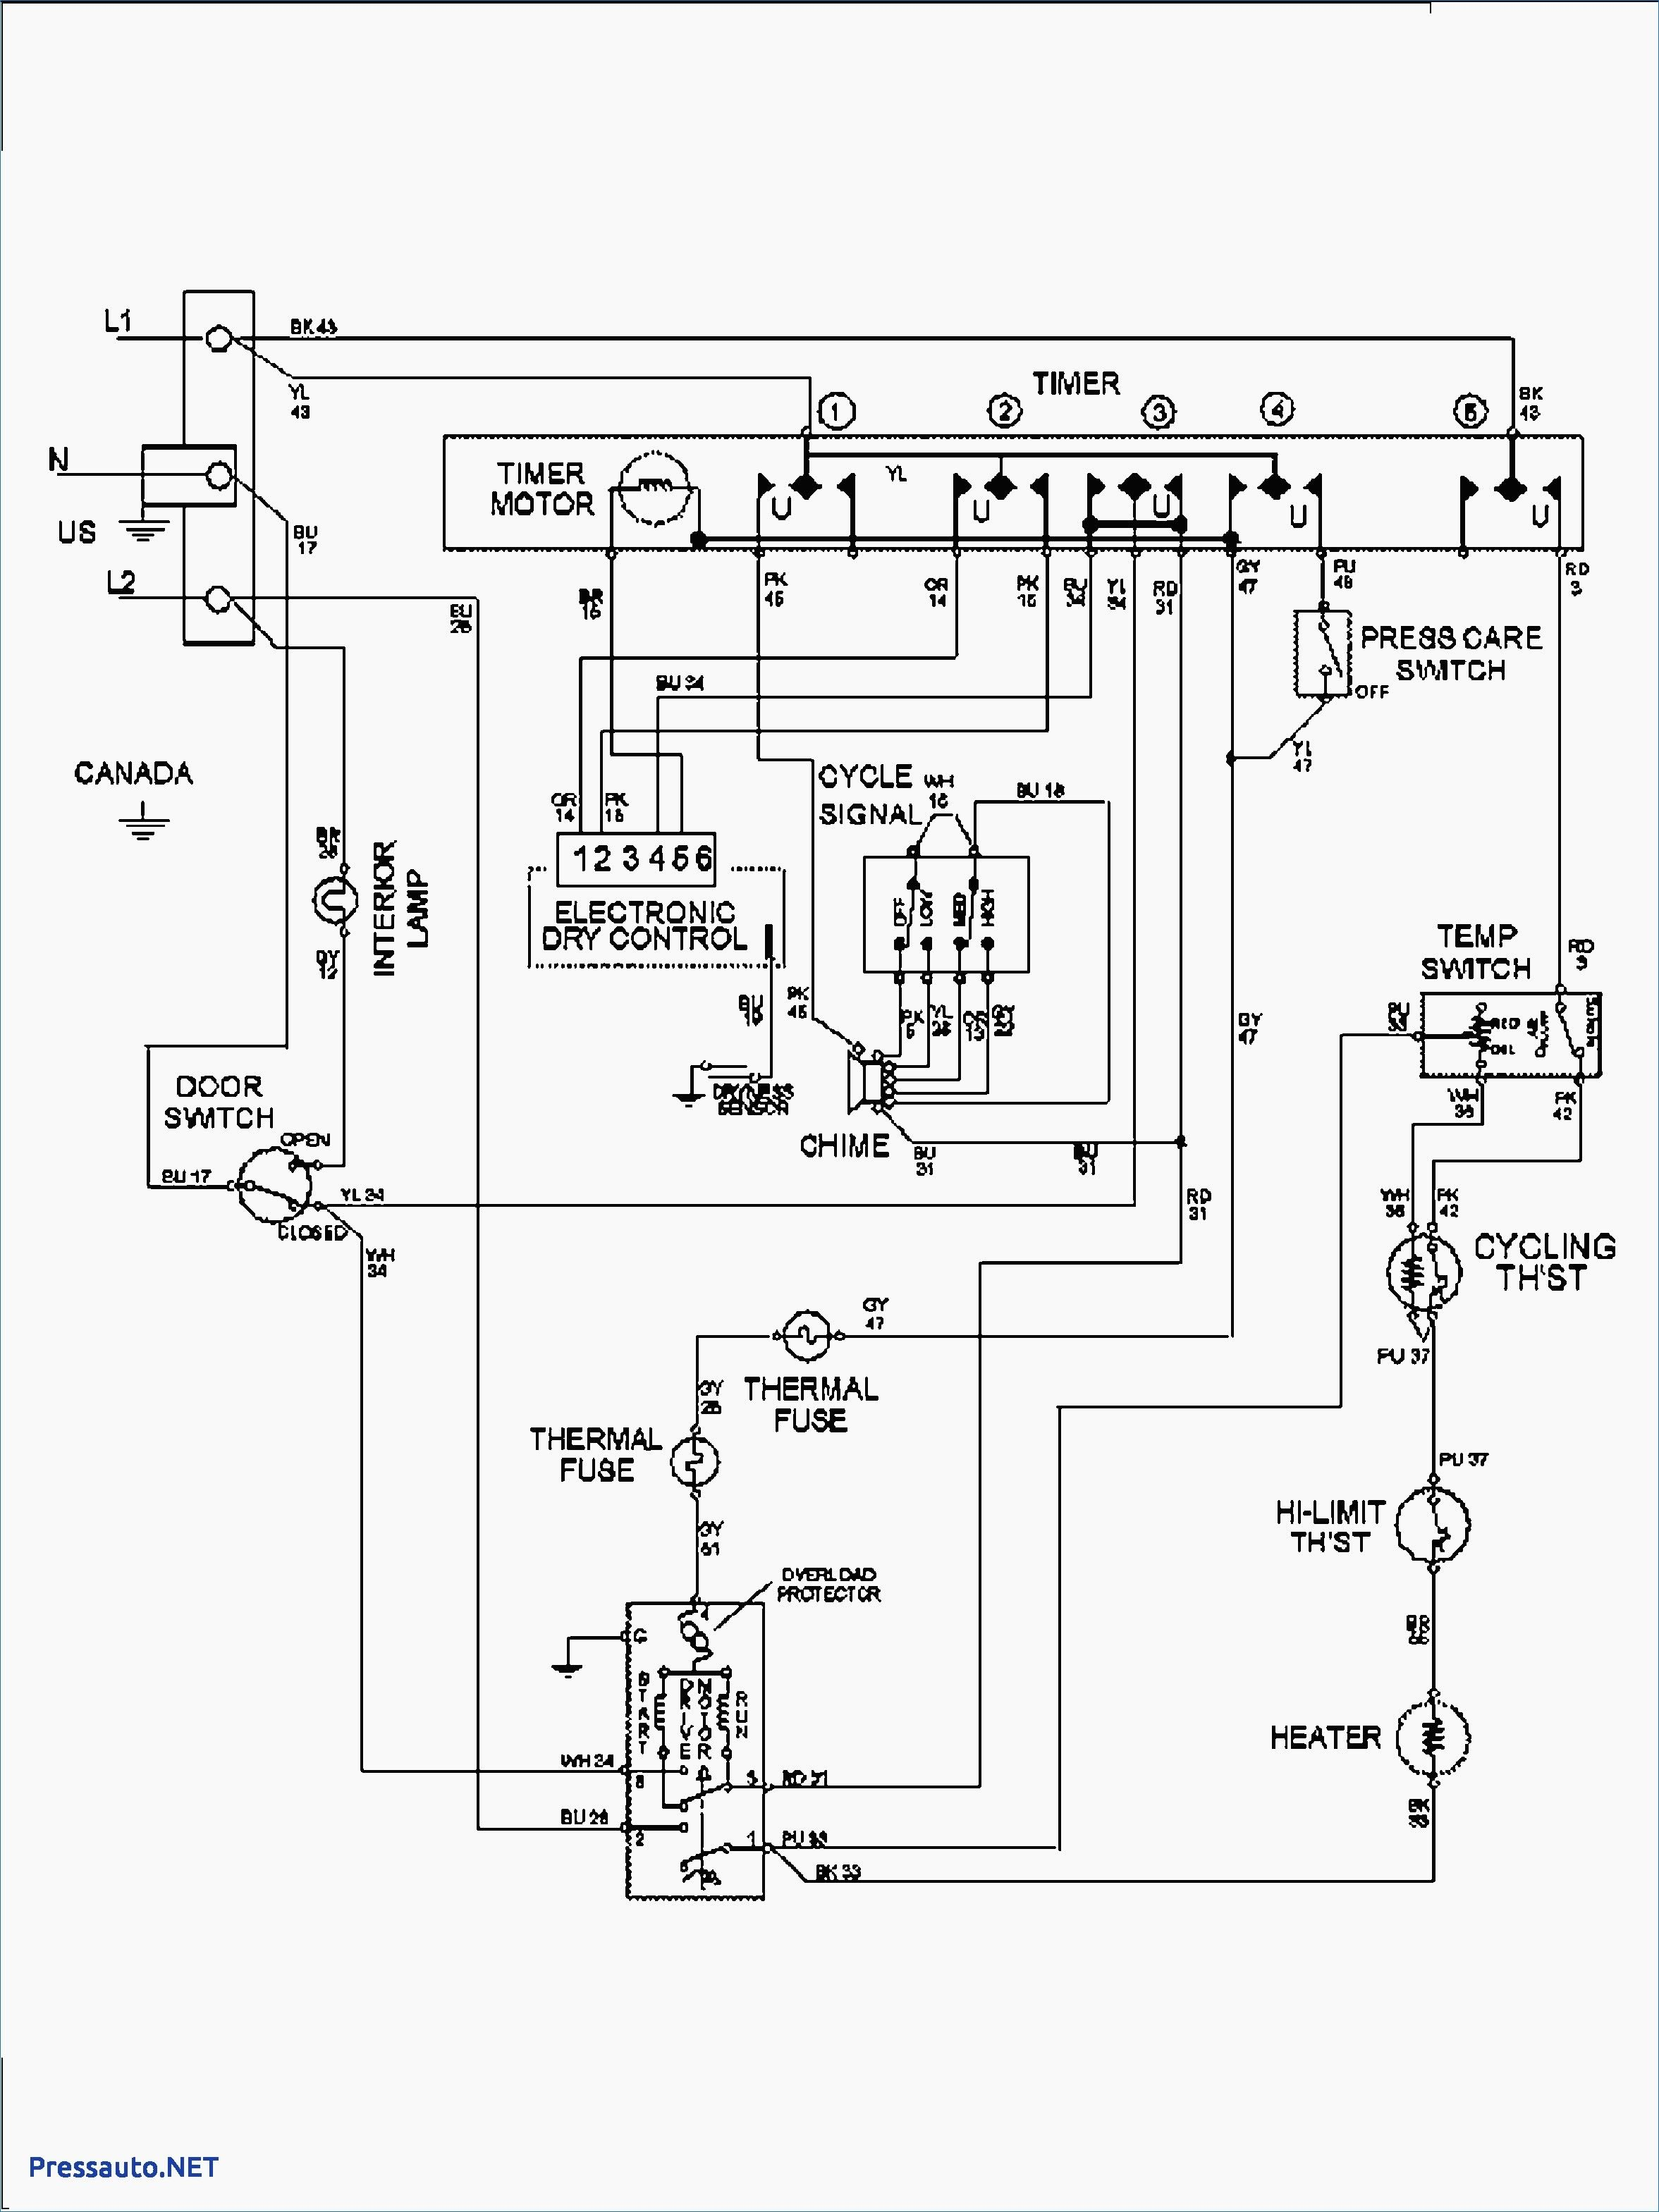 small resolution of wiring diagram of washing machine with dryer wiring diagram wiring diagram of washing machine with dryer